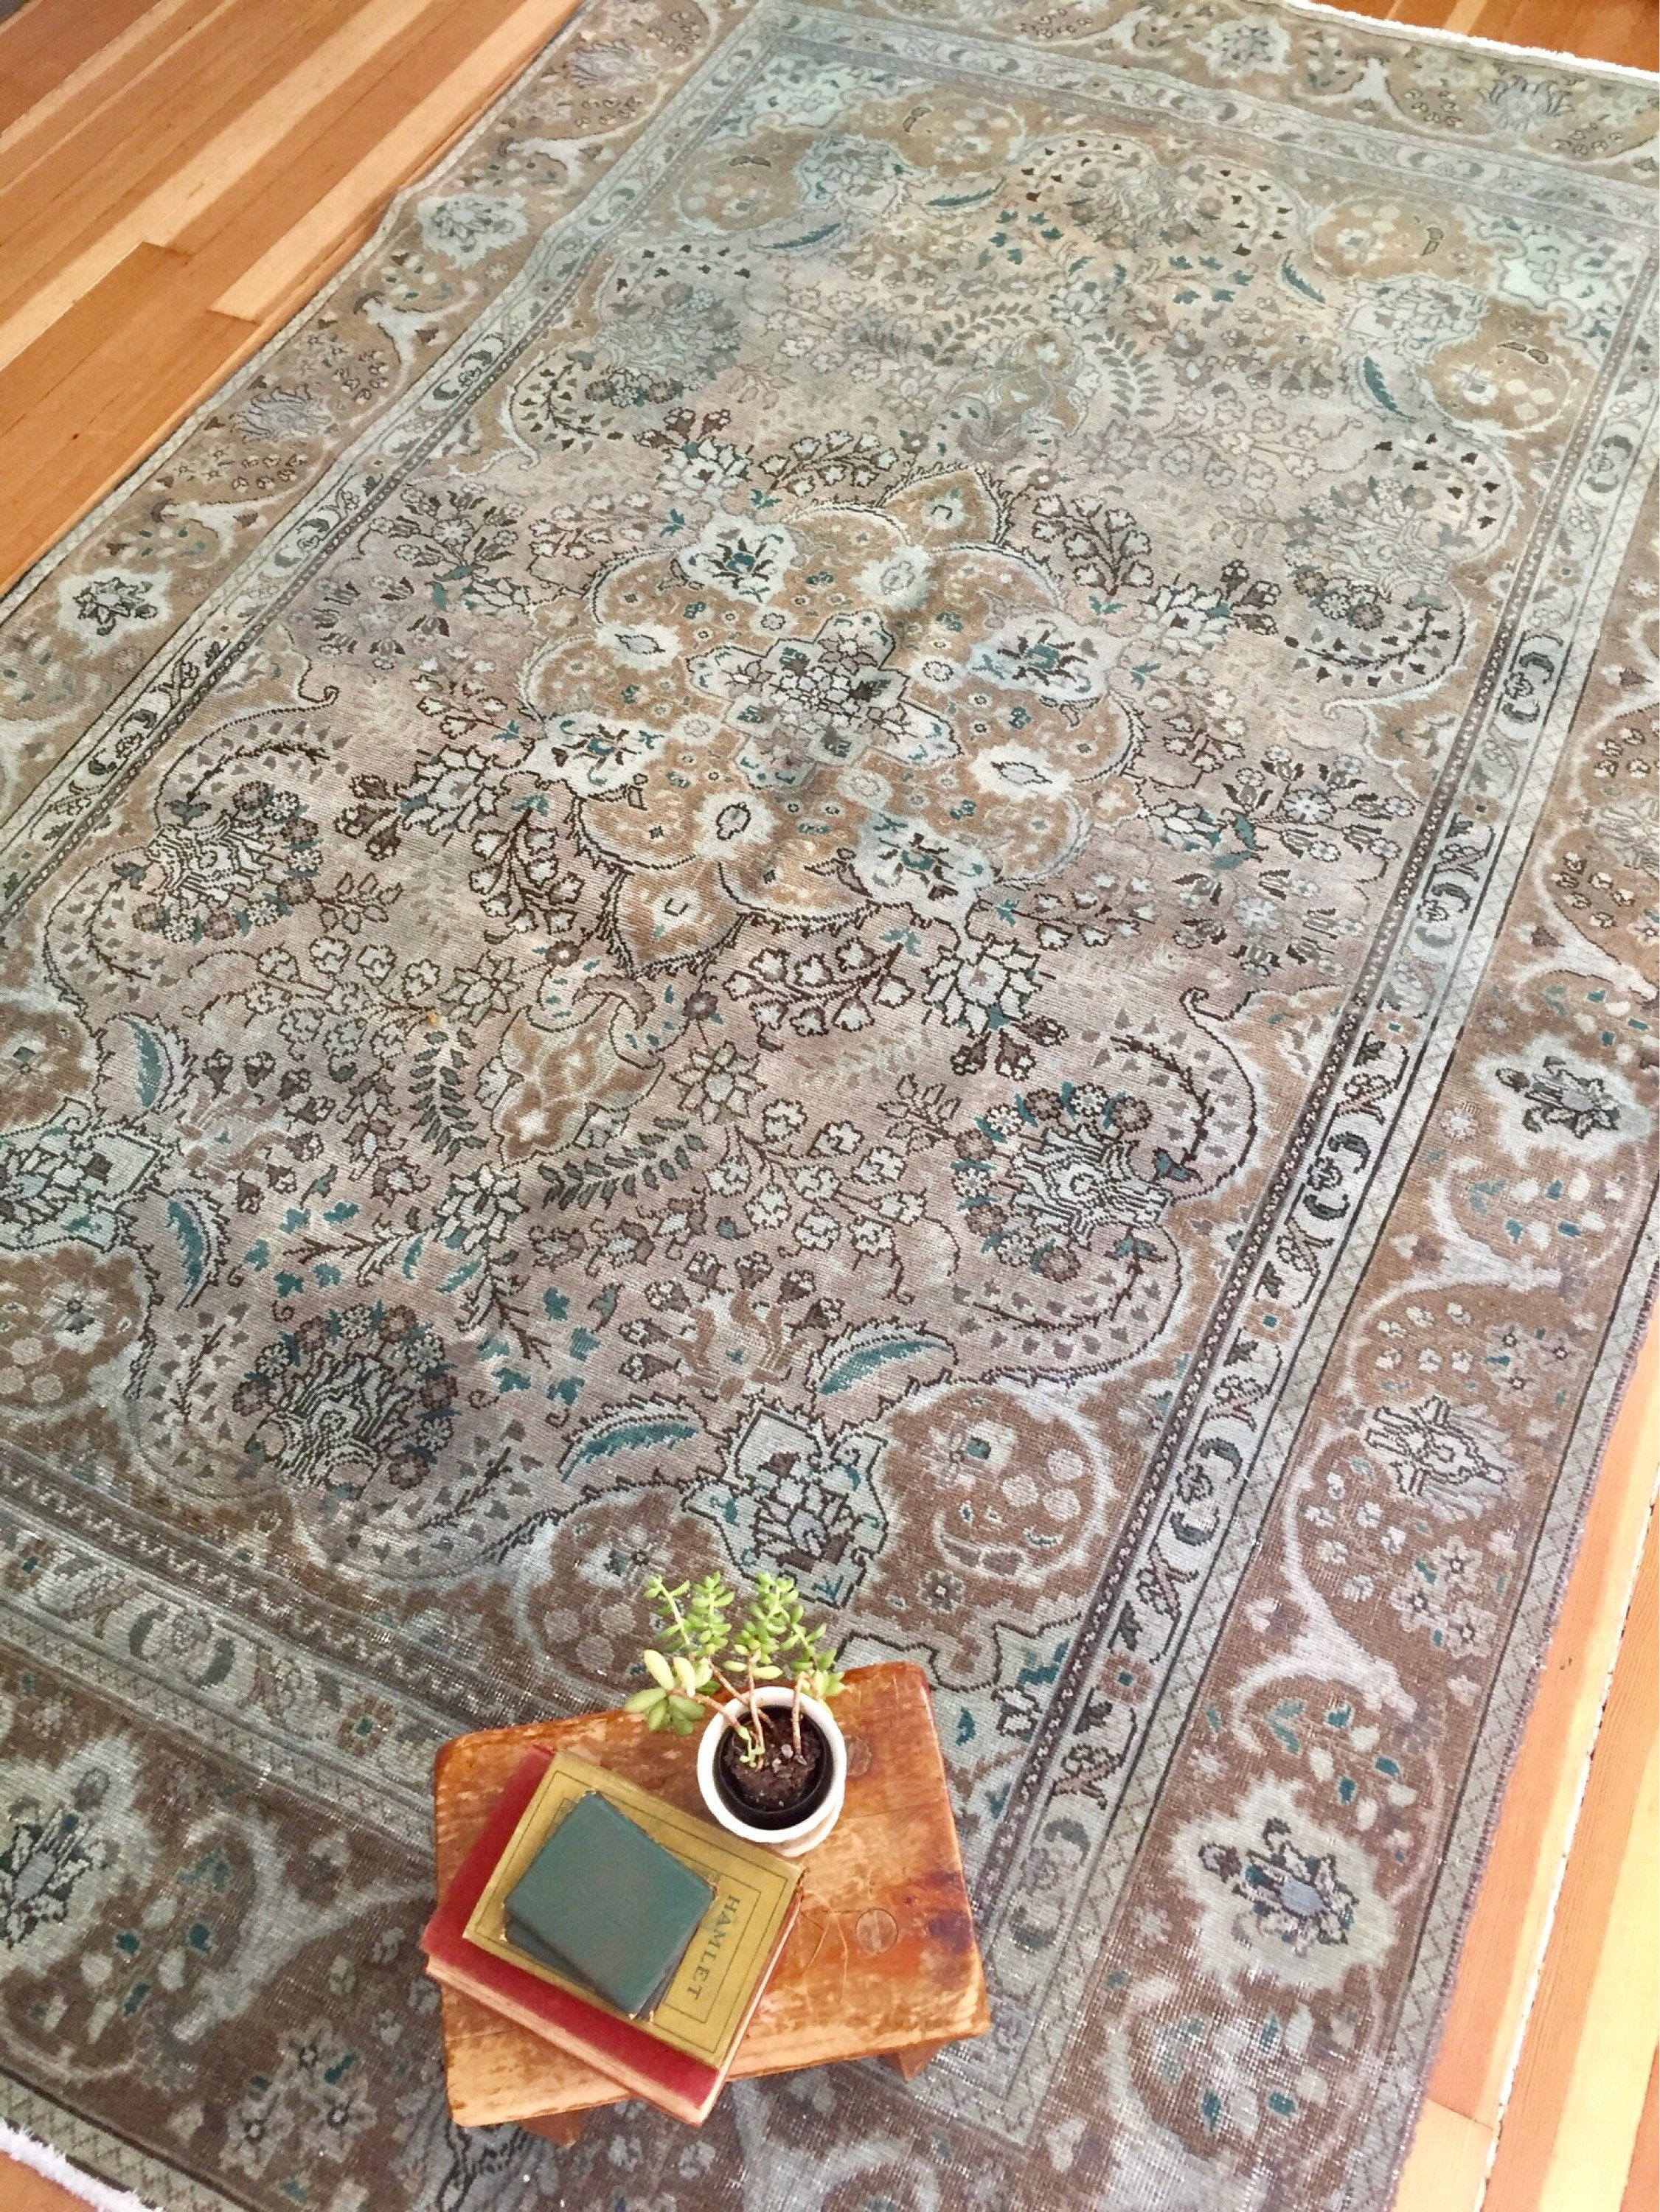 of price a thrift so kept layered layering i one not last m found hunting smaller new store rug another bohemian decor month to home on same with slightly and rugs splurge the img in